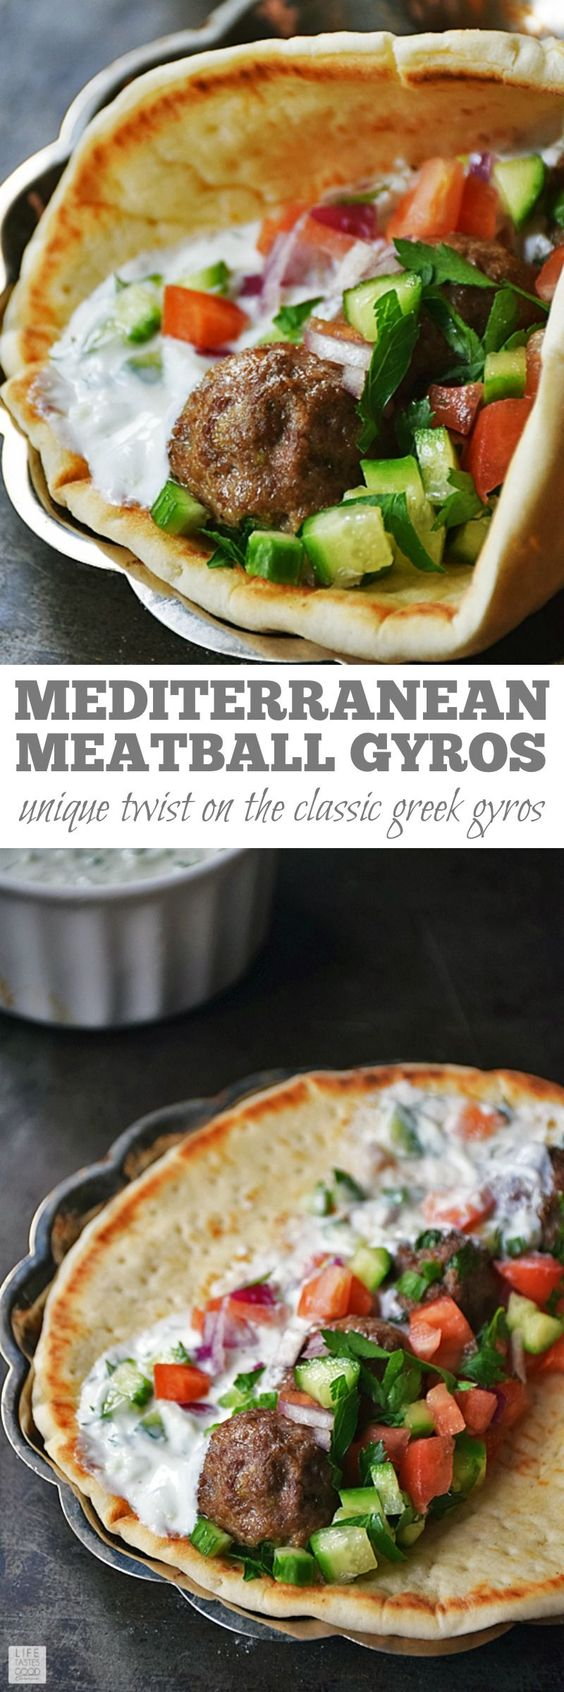 Mediterranean Meatball Gyros Sandwiches | by Life Tastes Good are full of flavor and very satisfying! Using simple flavors often found in Greek cuisine, this unique recipe puts a twist on a traditional gyros recipe. Makes a tasty dinner or appetizer recipe for parties too! #SundaySupper: